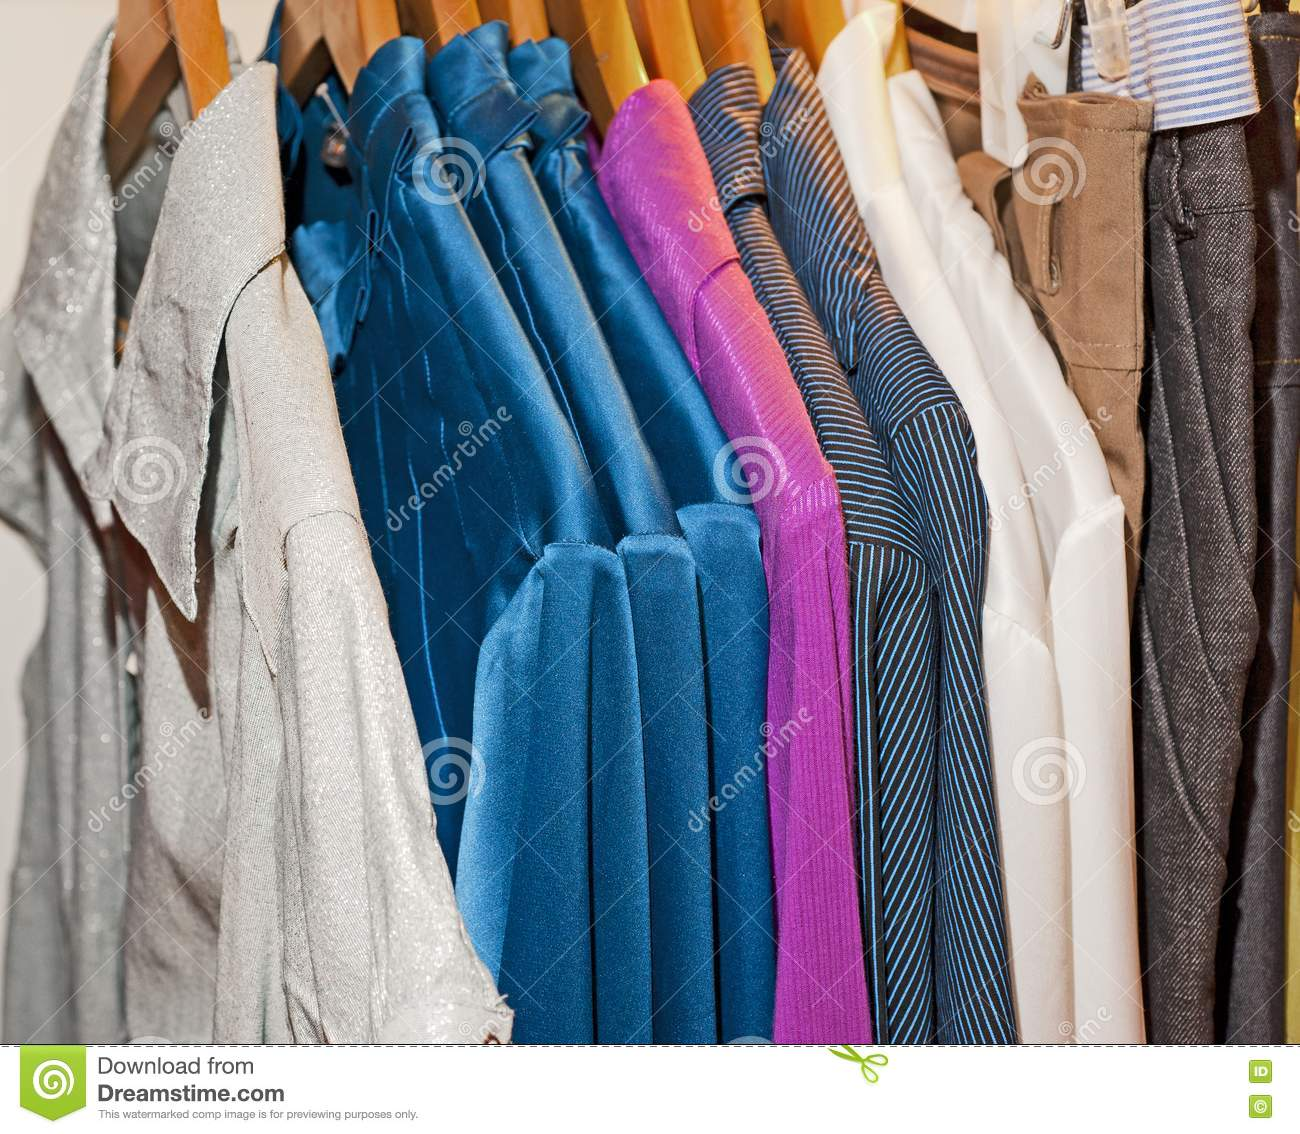 Clothing Hanging On A Rail Royalty Free Stock Photos - Image 14835808